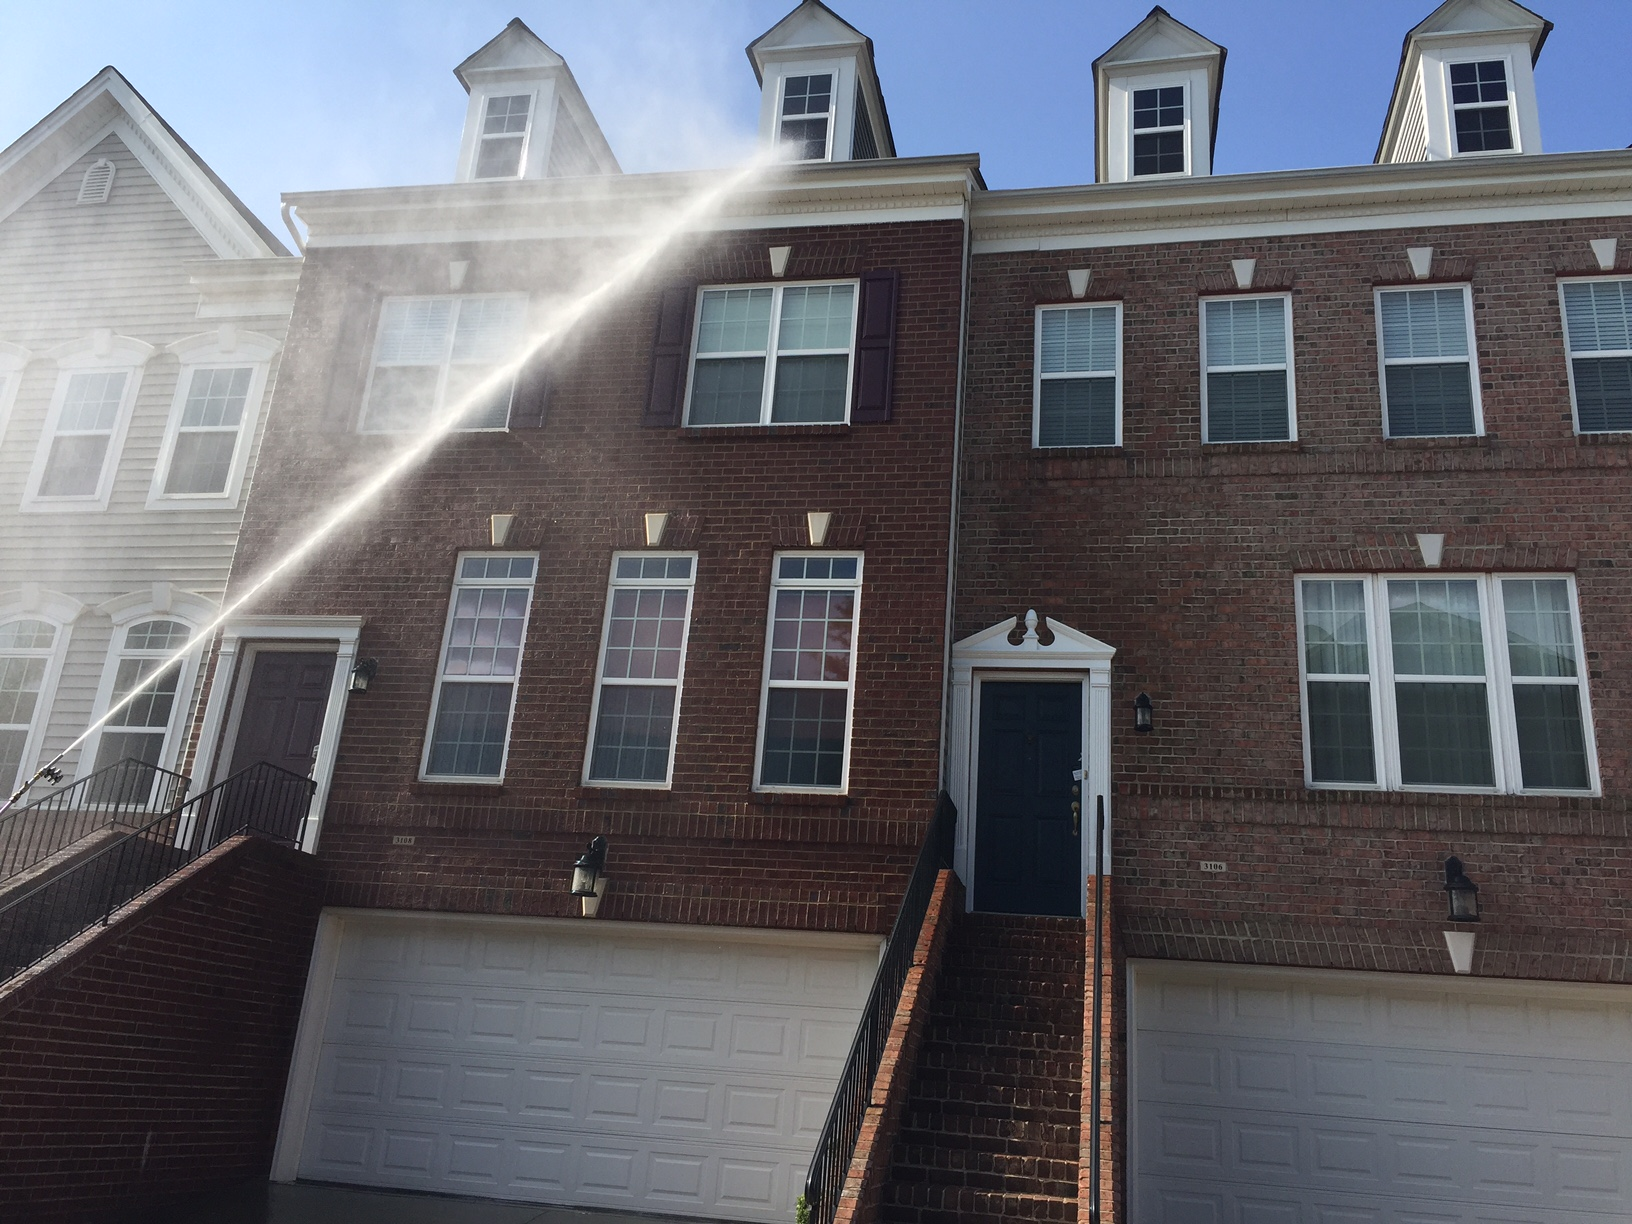 Pressure Washing Raleigh – Apartment Complex Pressure Washing